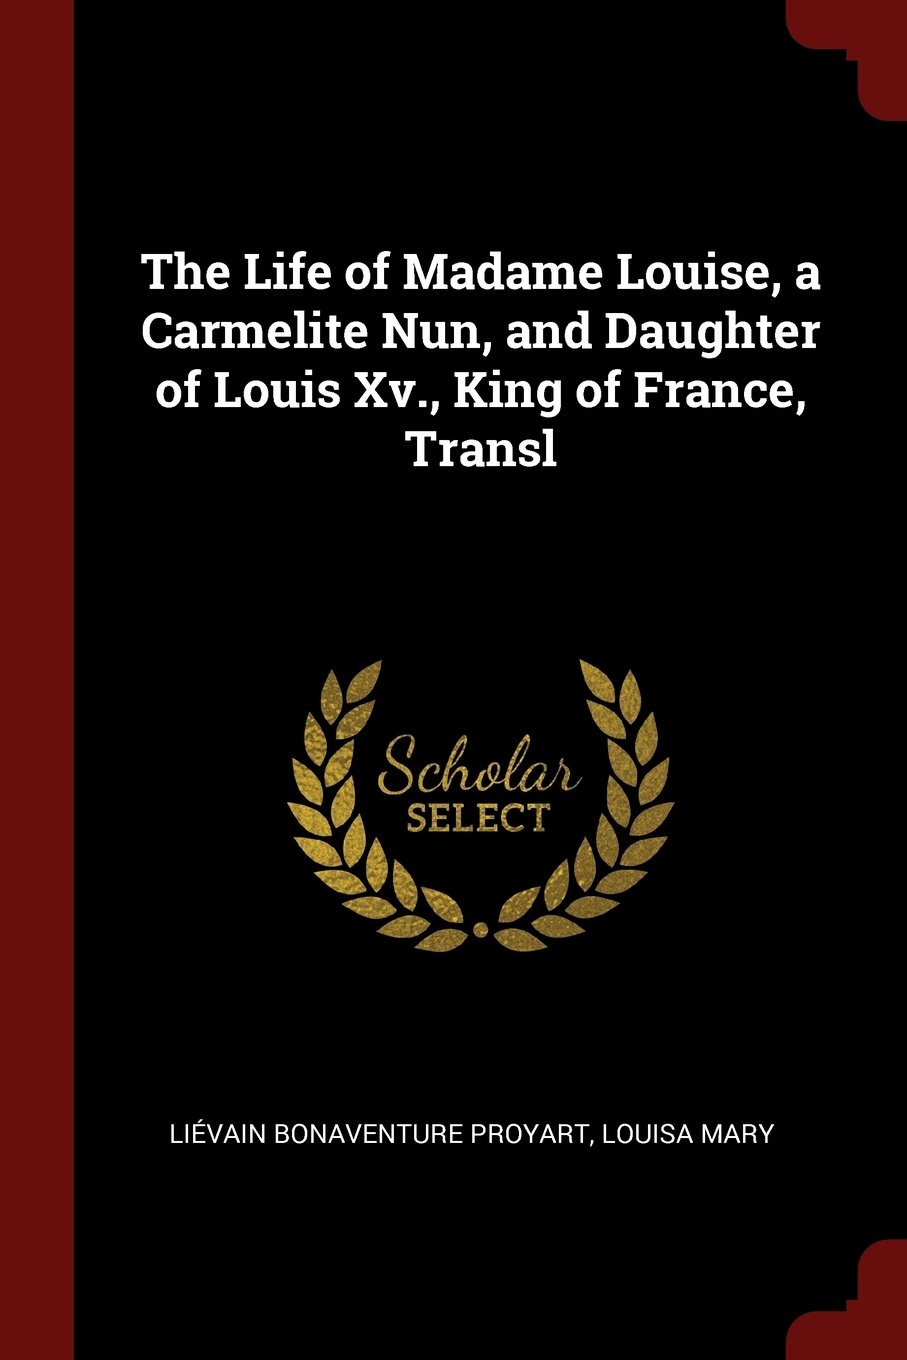 Download The Life of Madame Louise, a Carmelite Nun, and Daughter of Louis Xv., King of France, Transl pdf